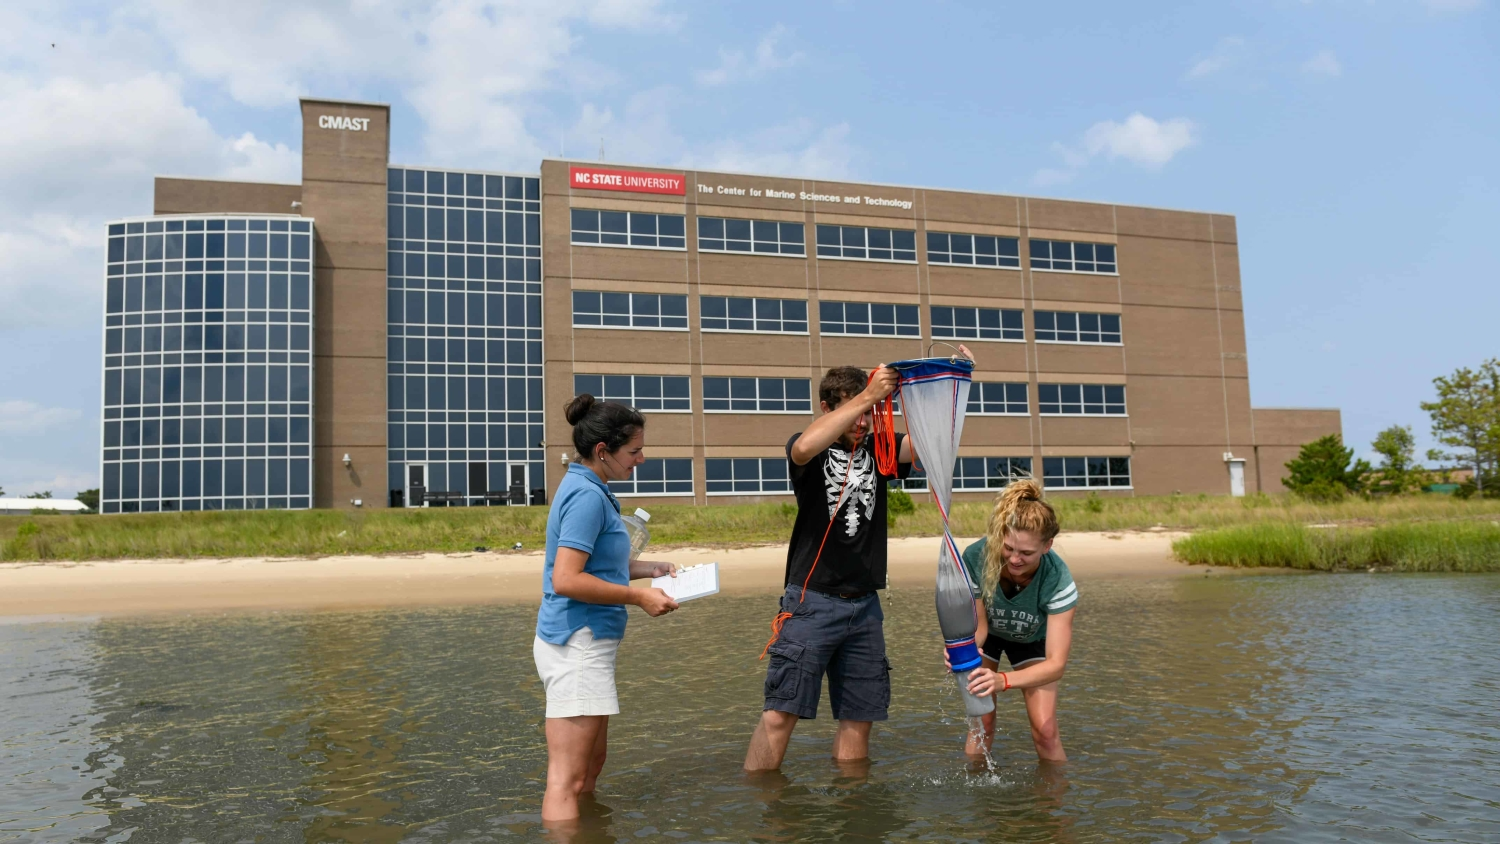 Students and an instructor sample in the sound with the CMAST building in the background